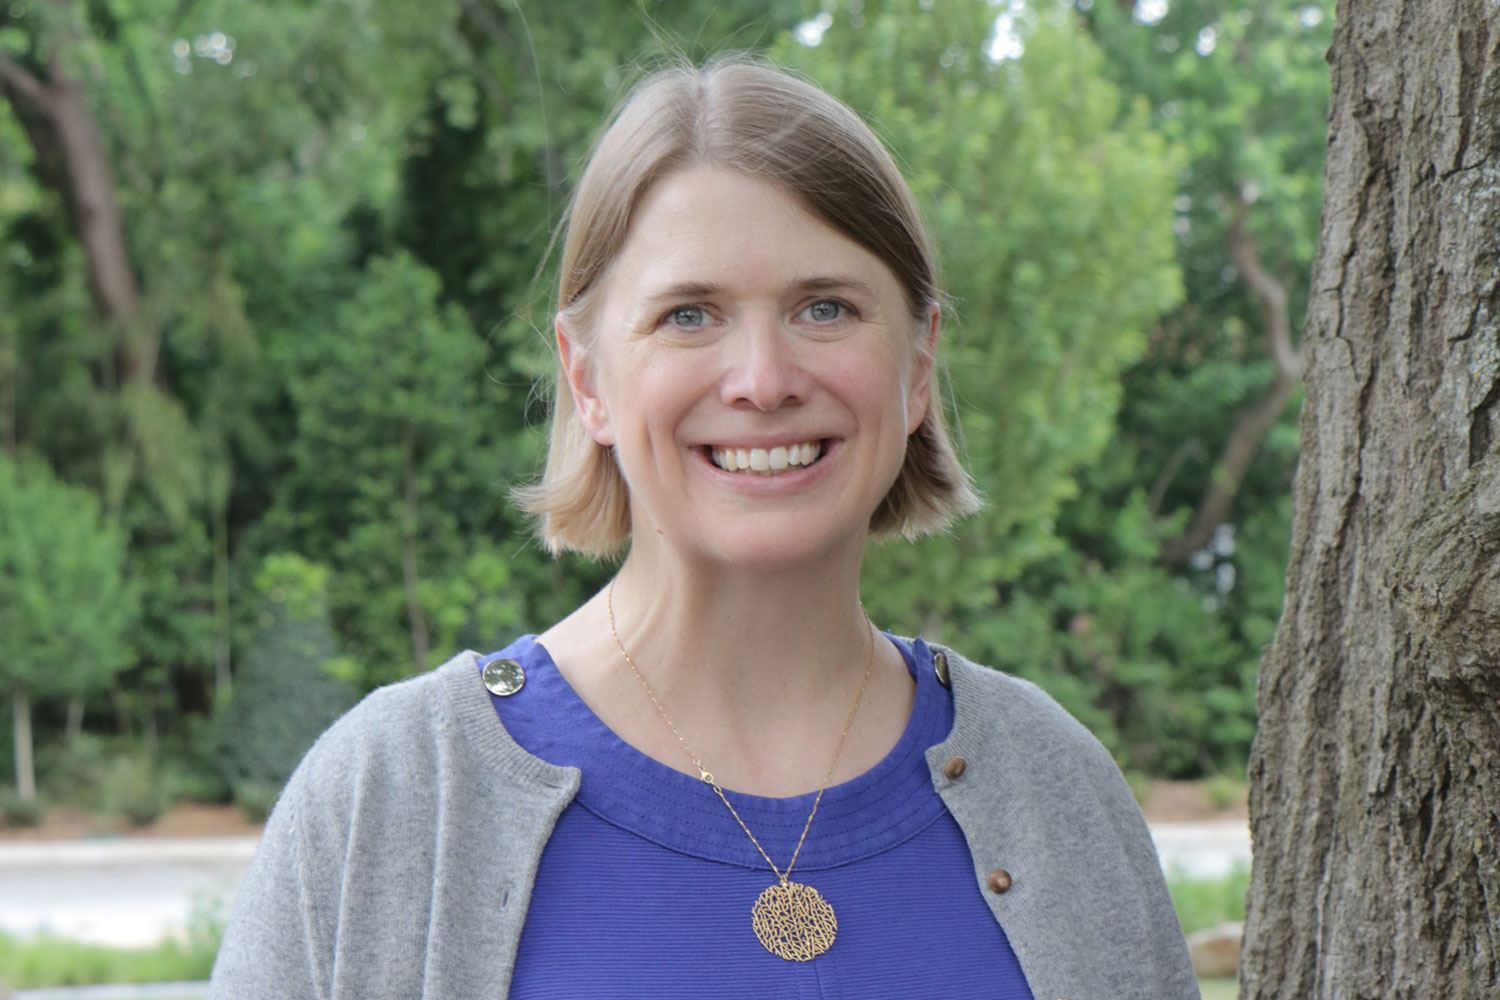 The Rev. Jenny Phillips supports United Methodist missionaries across the globe as the Senior Technical Advisor for Environmental Sustainability at Global Ministries. Photo by Anthony Trueheart.